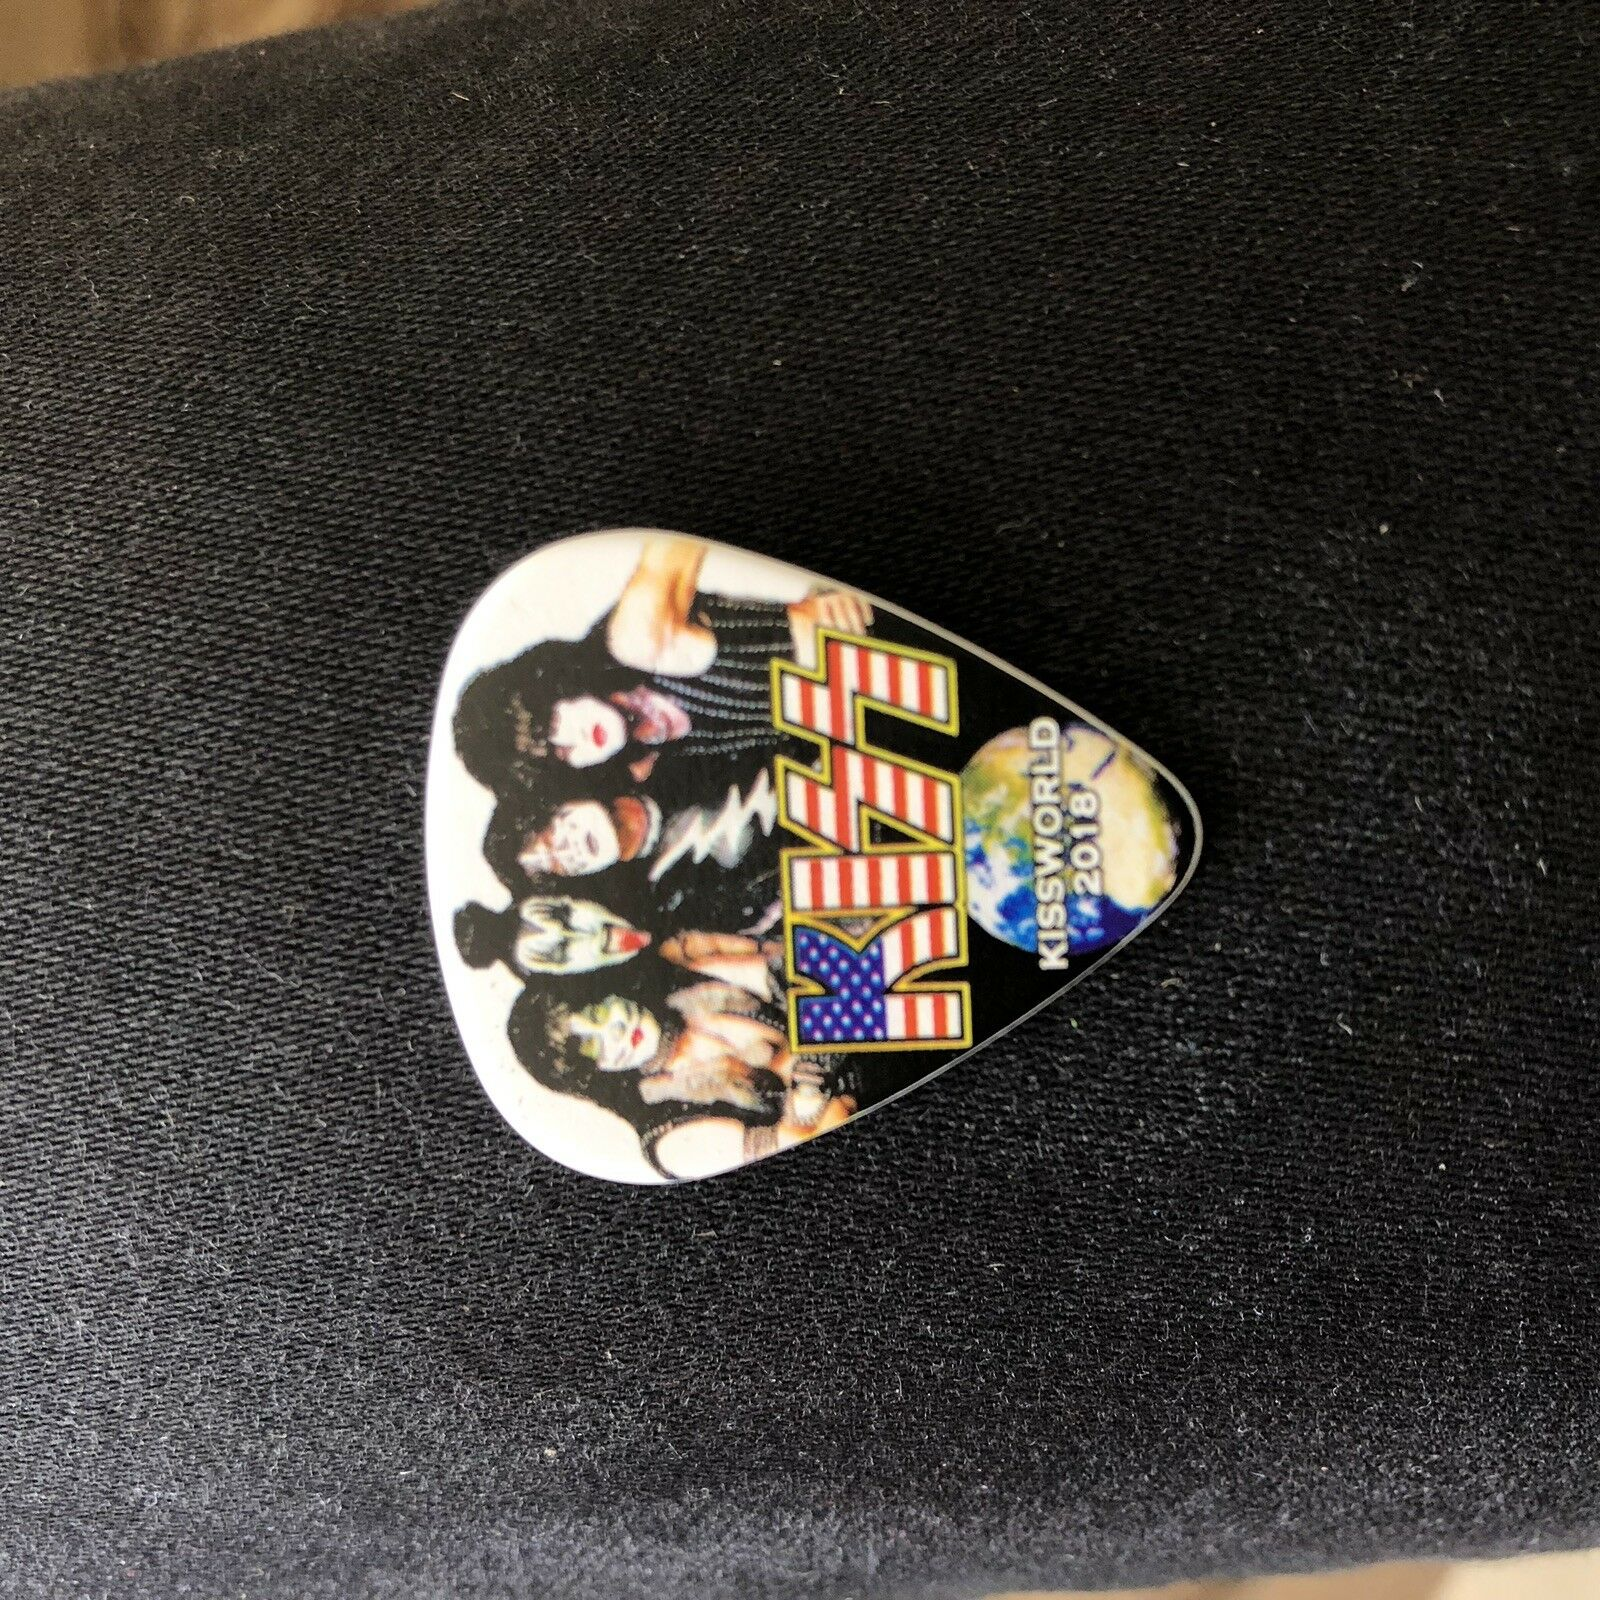 s l1600 - KISS Ace Frehley Guitar Pick - NJ 2018 Expo Signed Autograph Spaceman 12/7 Rare